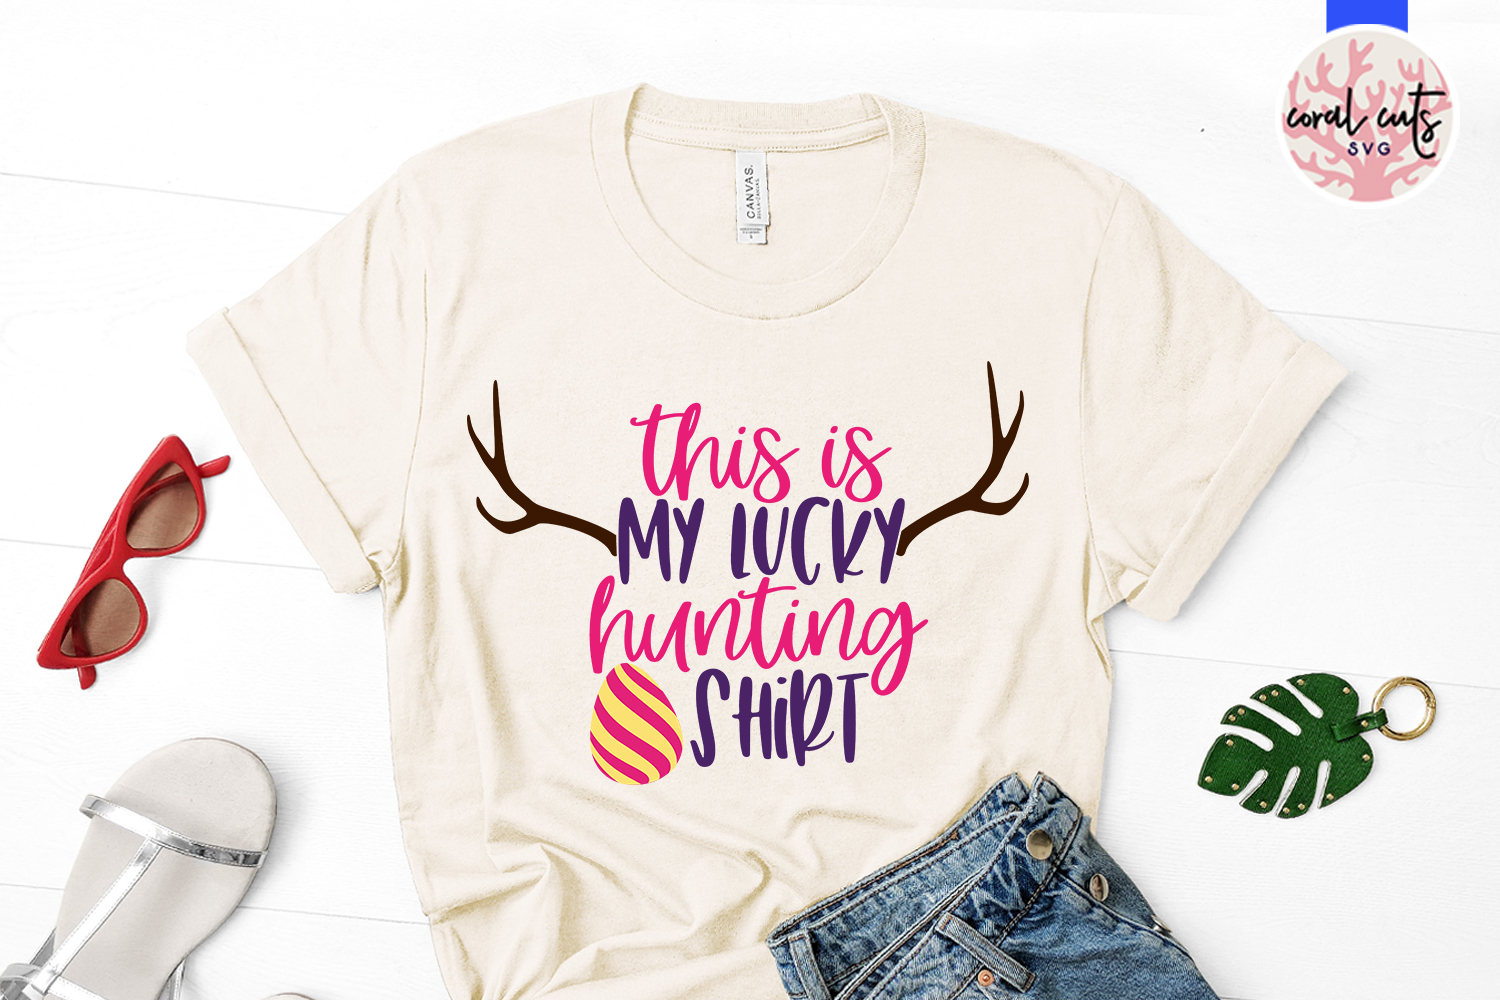 This is my lucky hunting shirt - Easter SVG EPS DXF PNG File example image 2